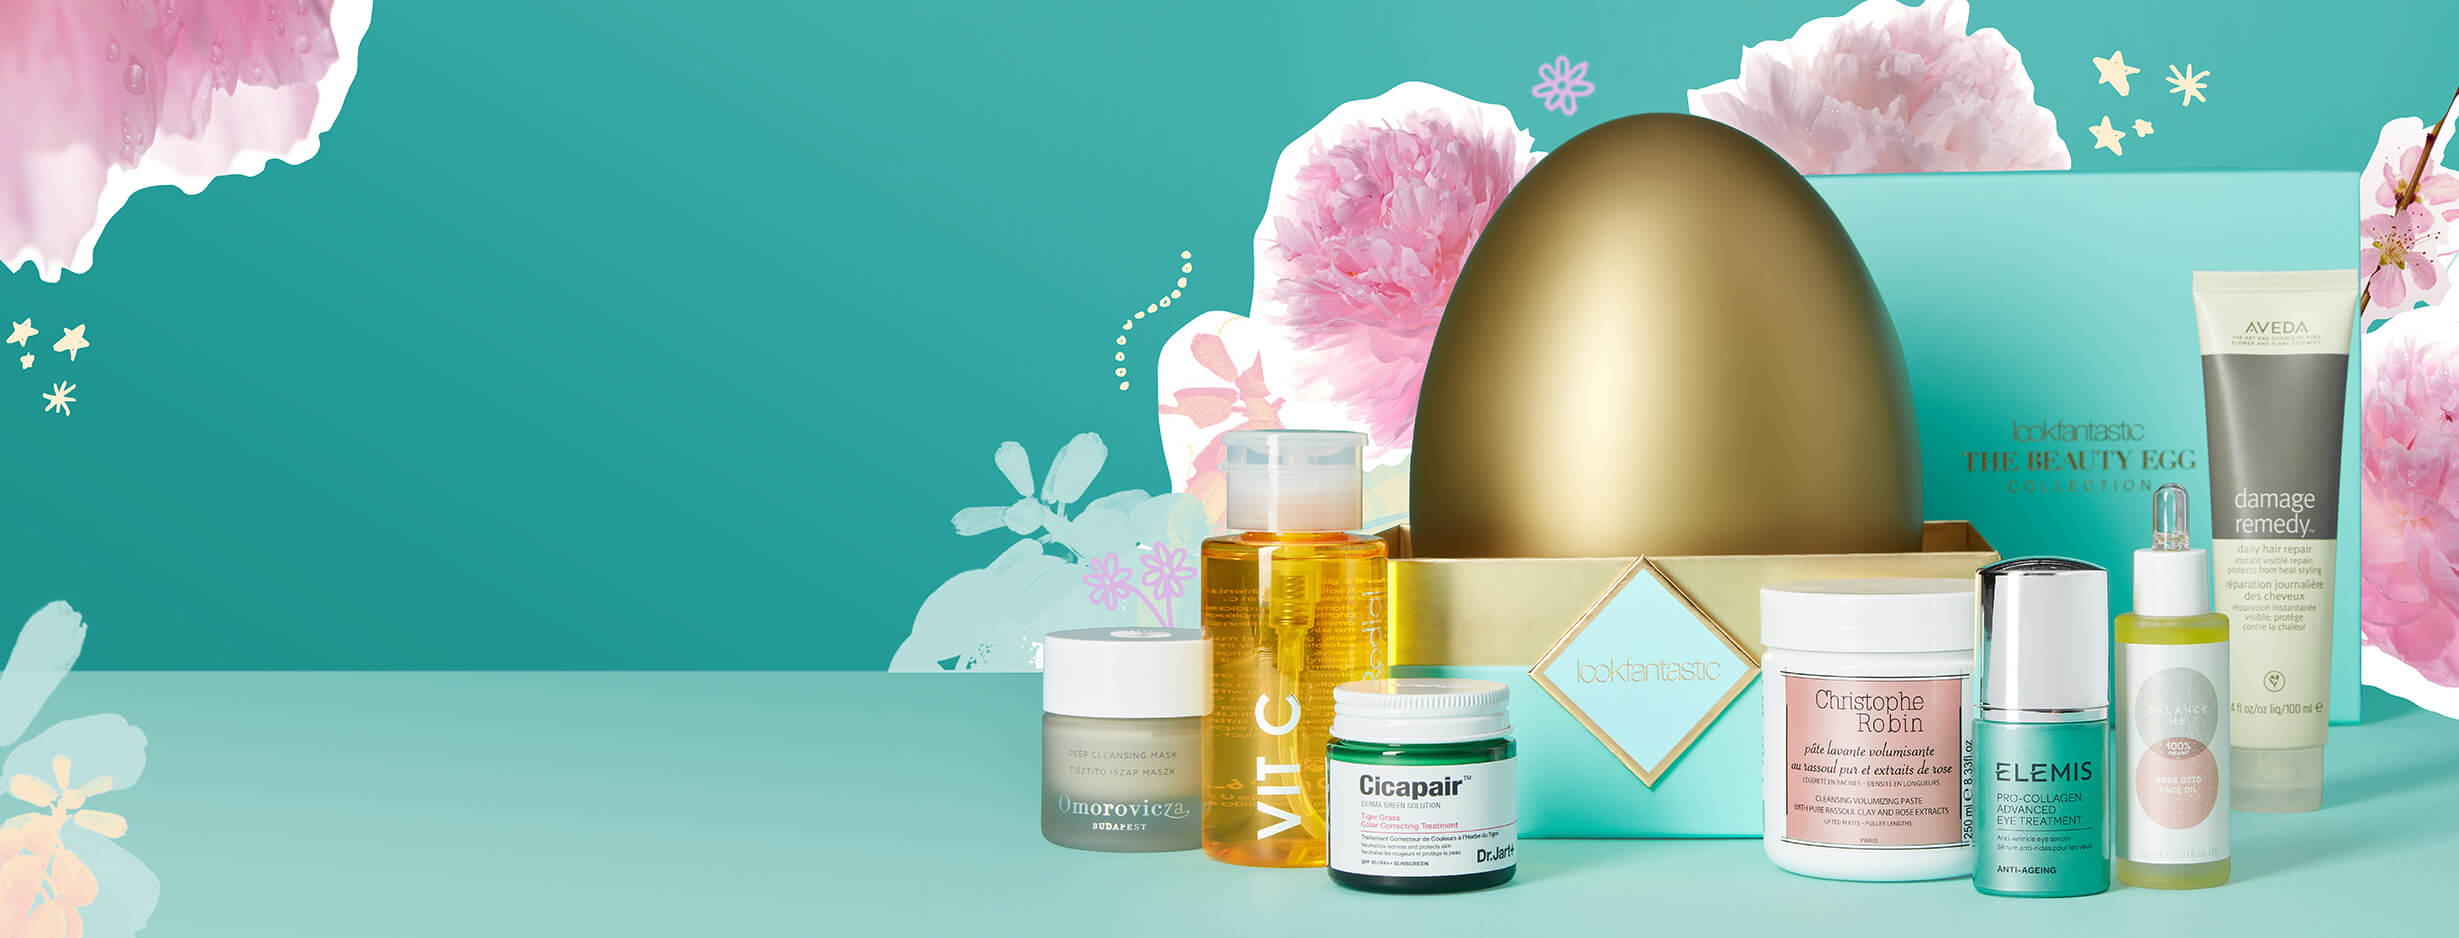 Beauty Box Beauty Egg